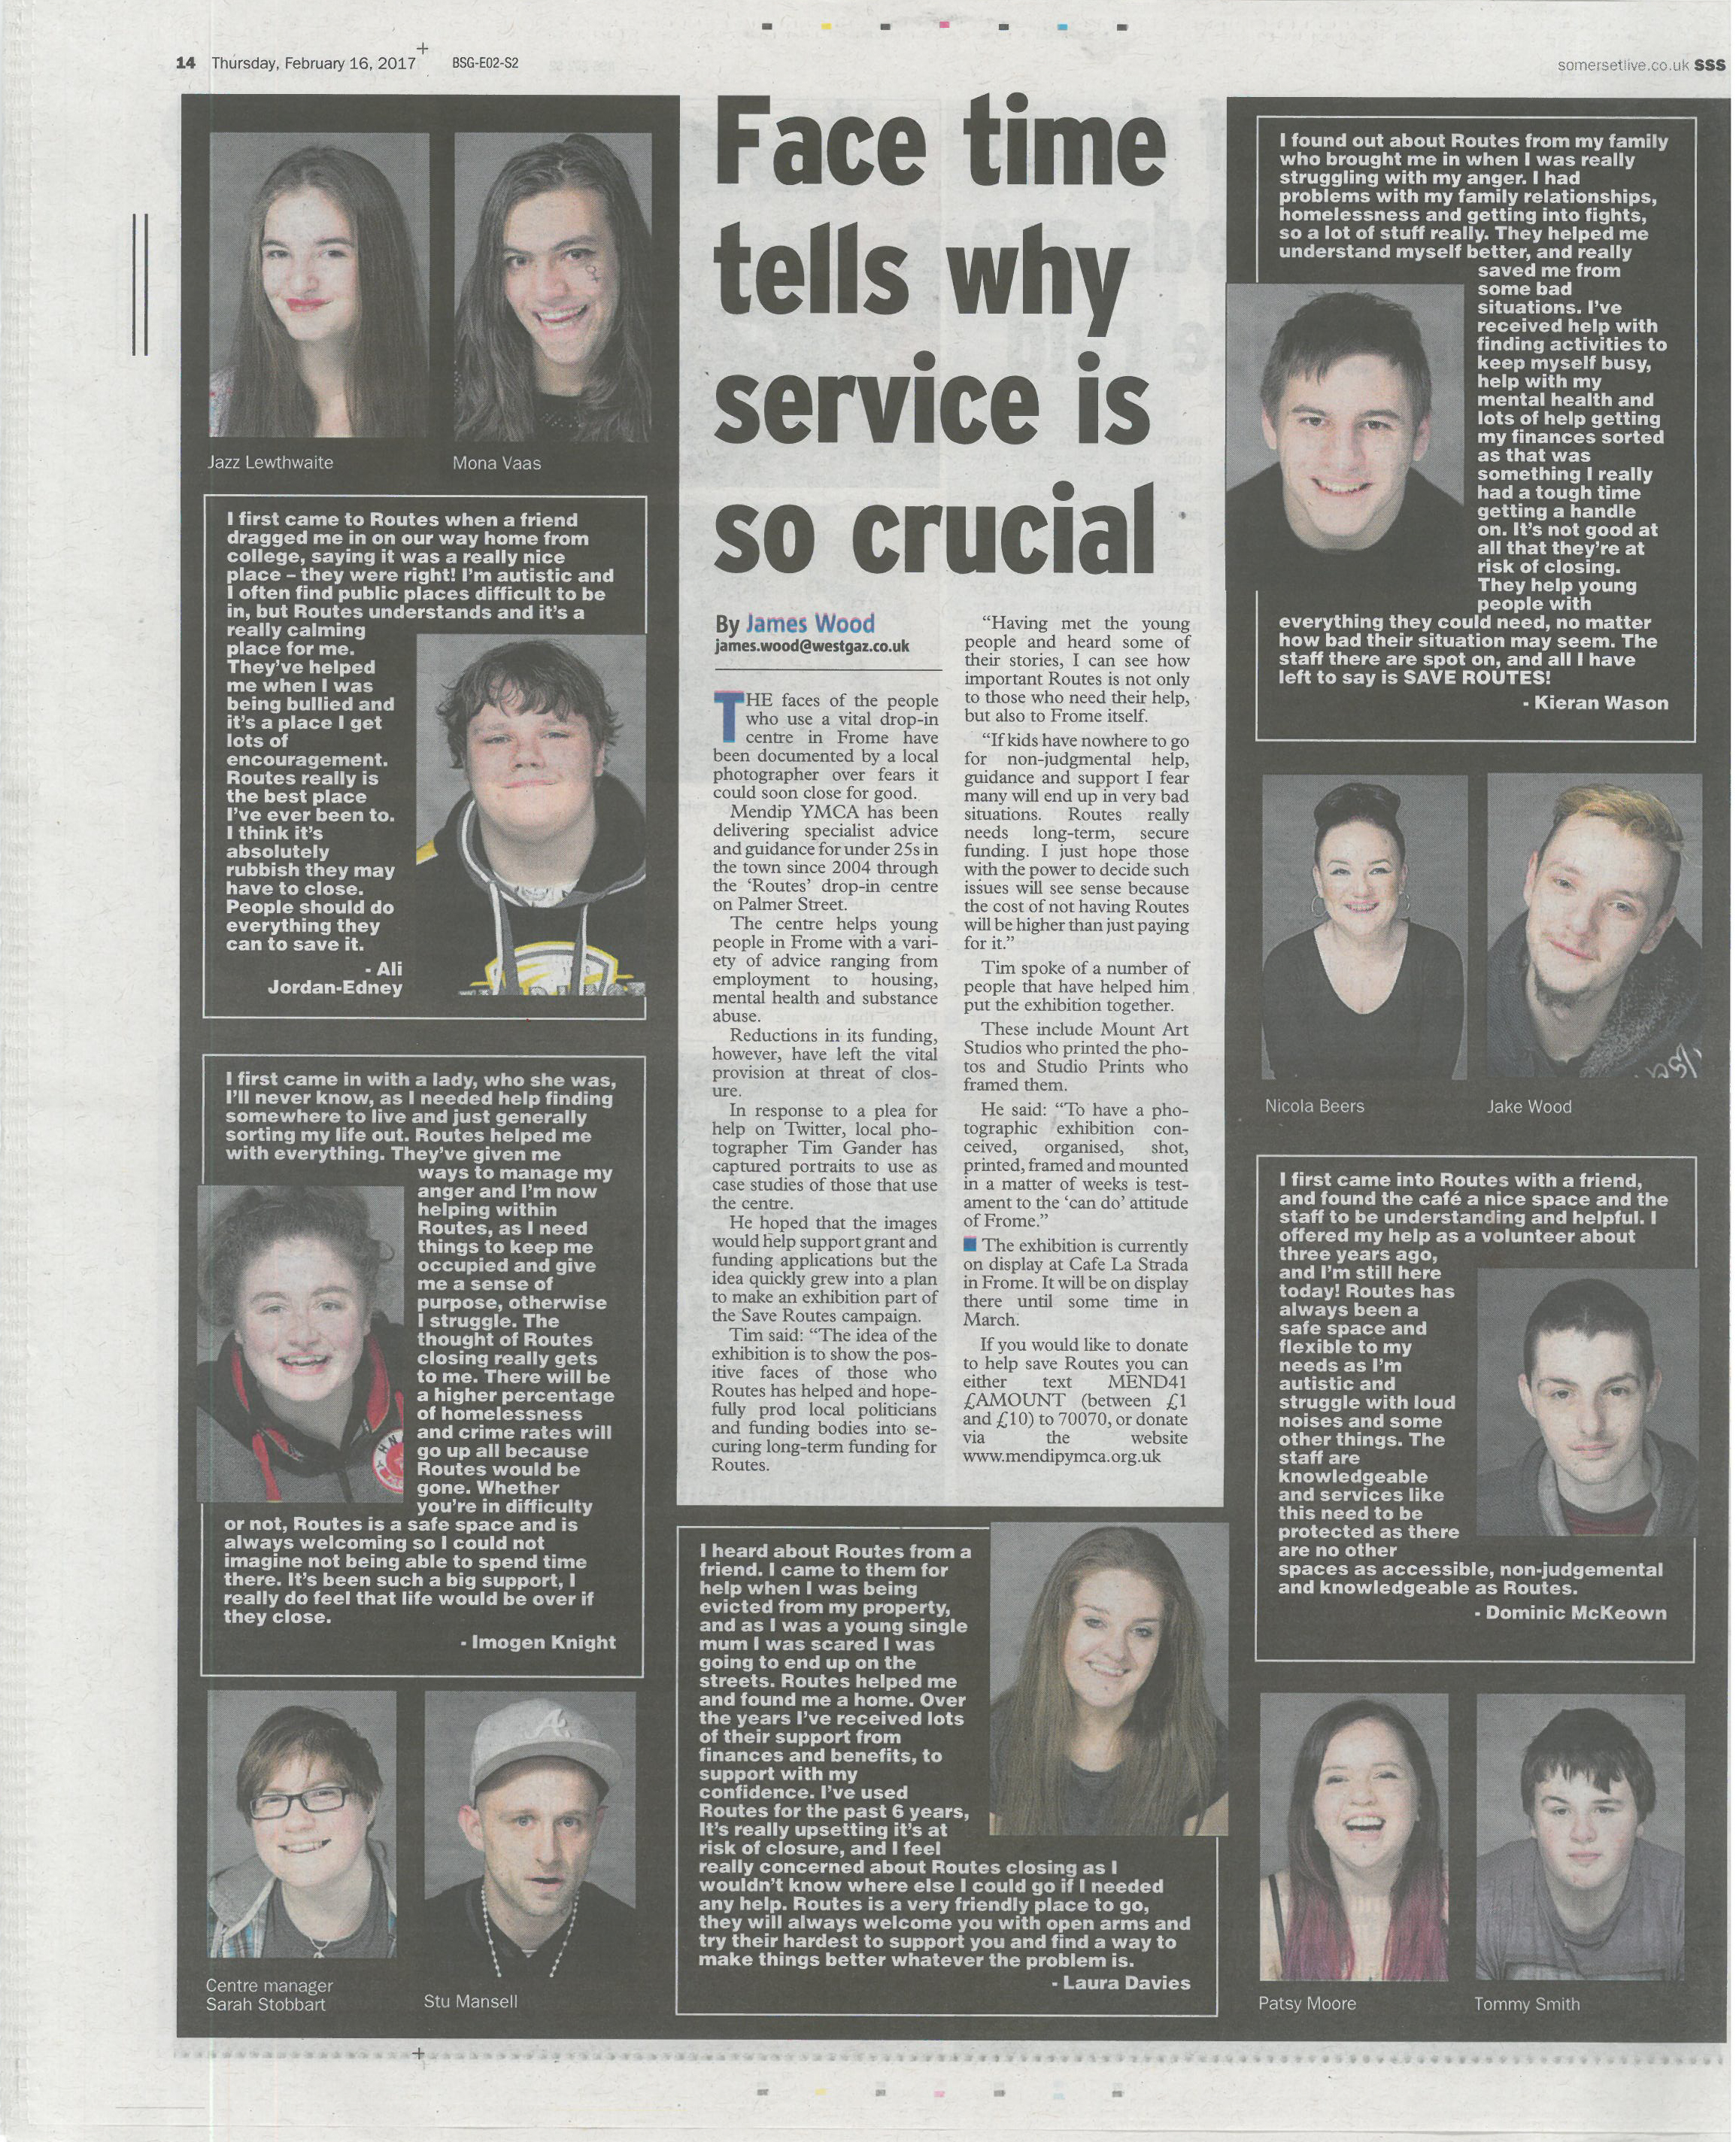 Full-page spread of photos and case studies in the Frome Standard.